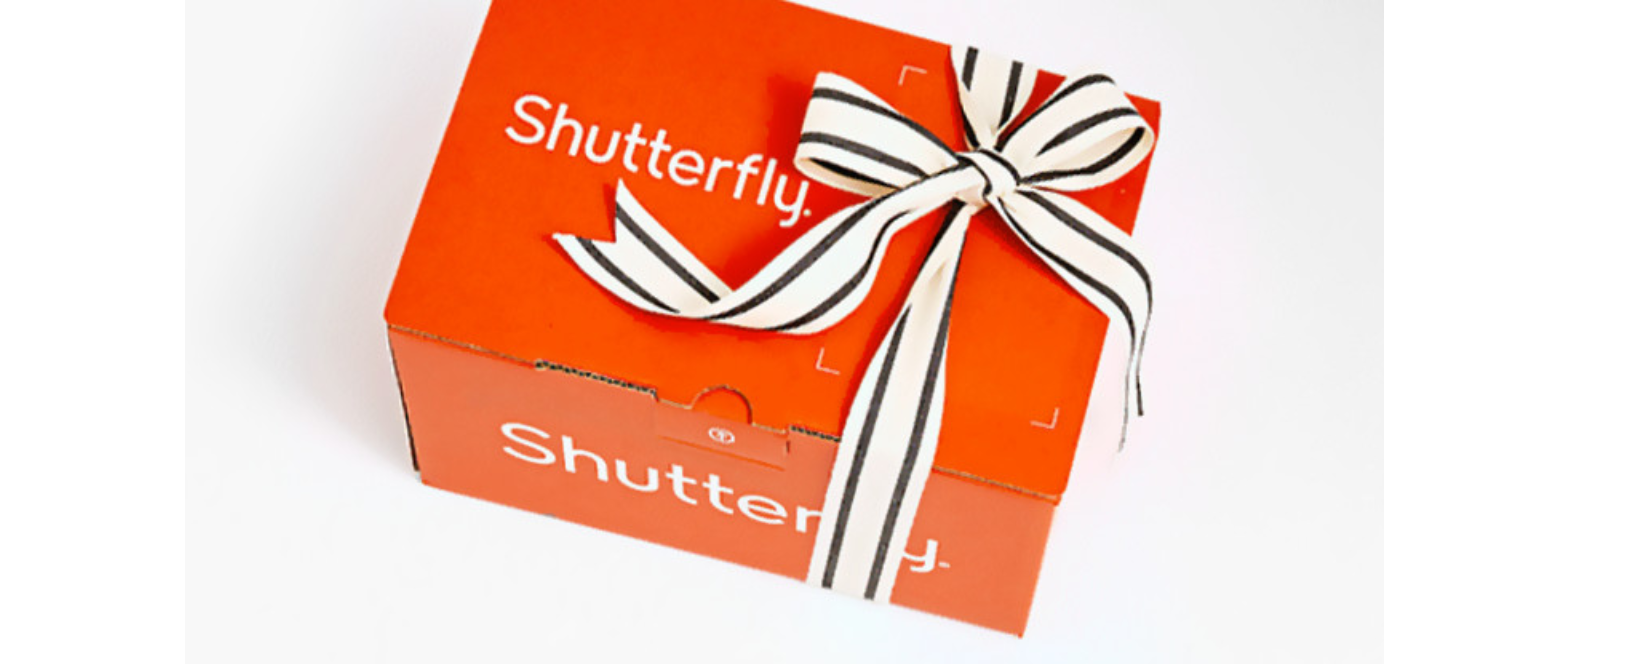 Live the Nostalgia with Shutterfly Review!